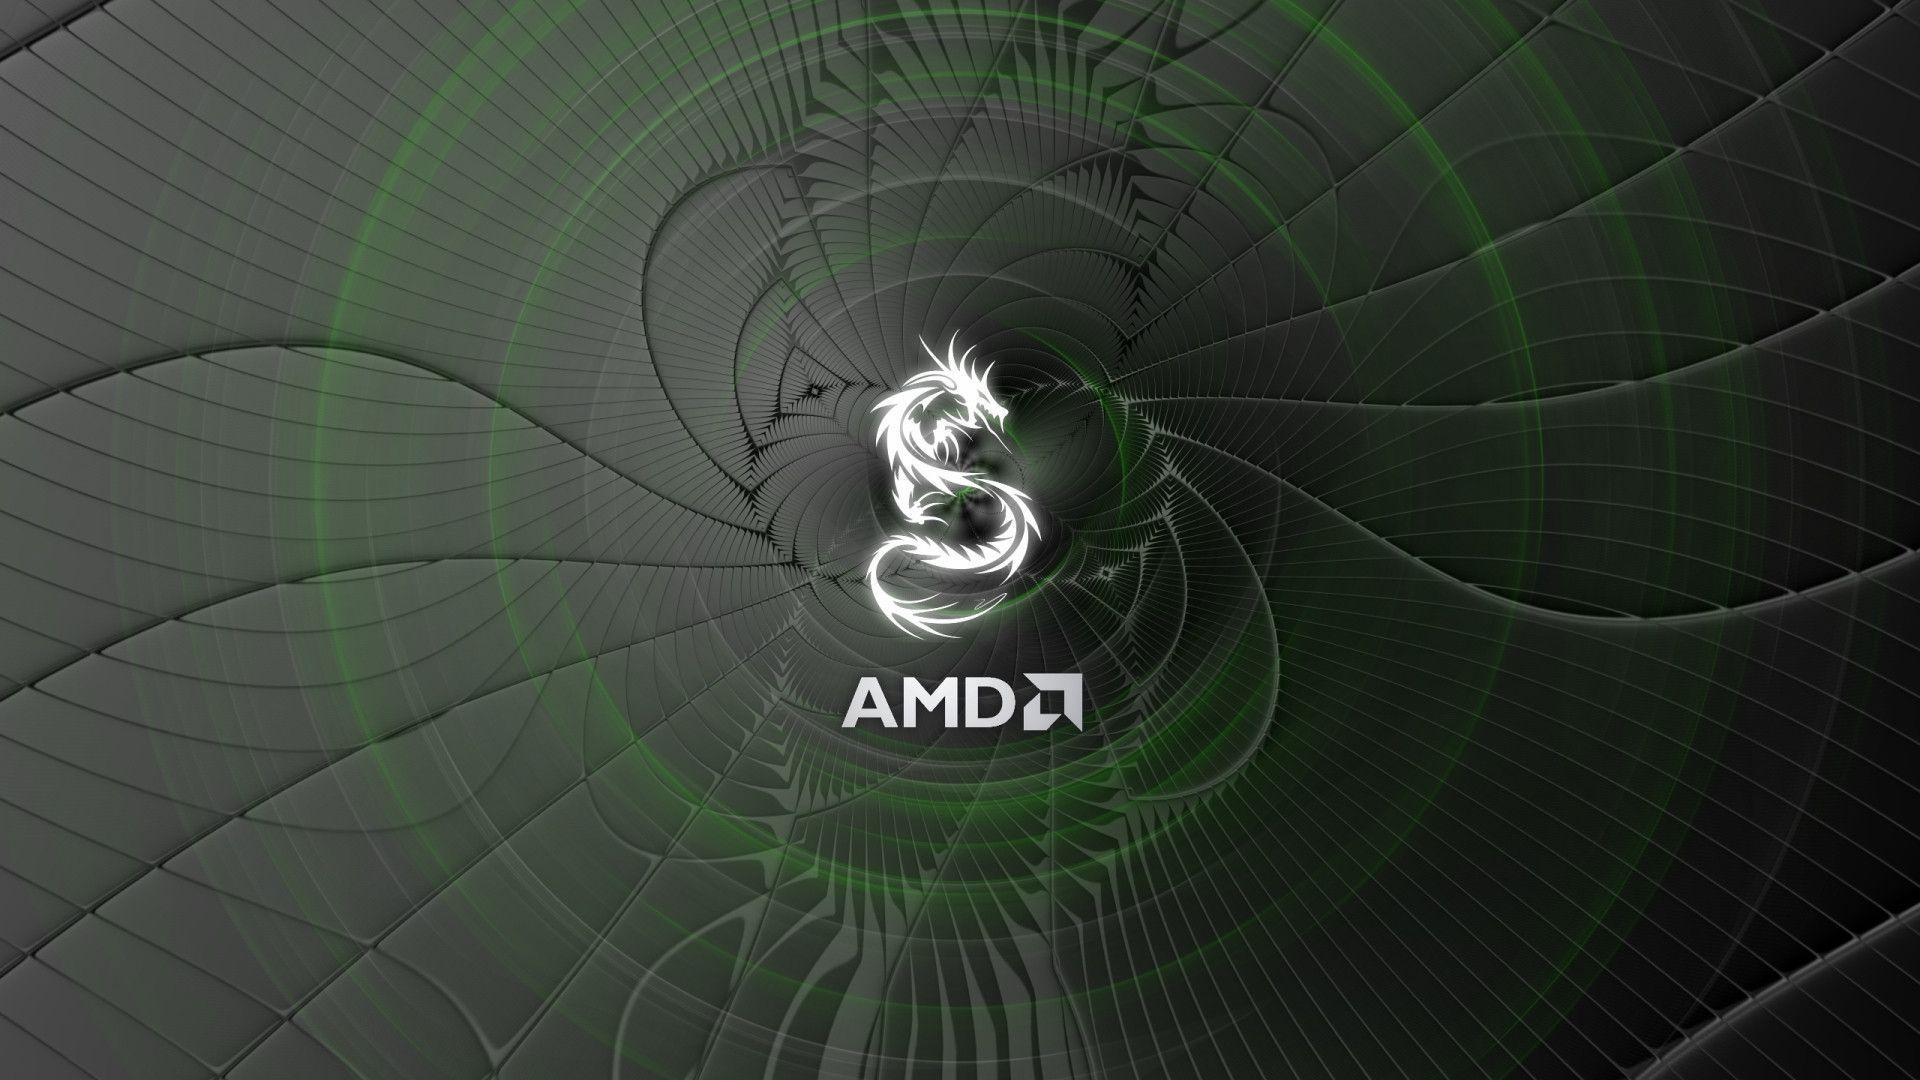 1920x1080 Xfx Amd Radeon Hd 6870 | Free PSP Themes Wallpapers